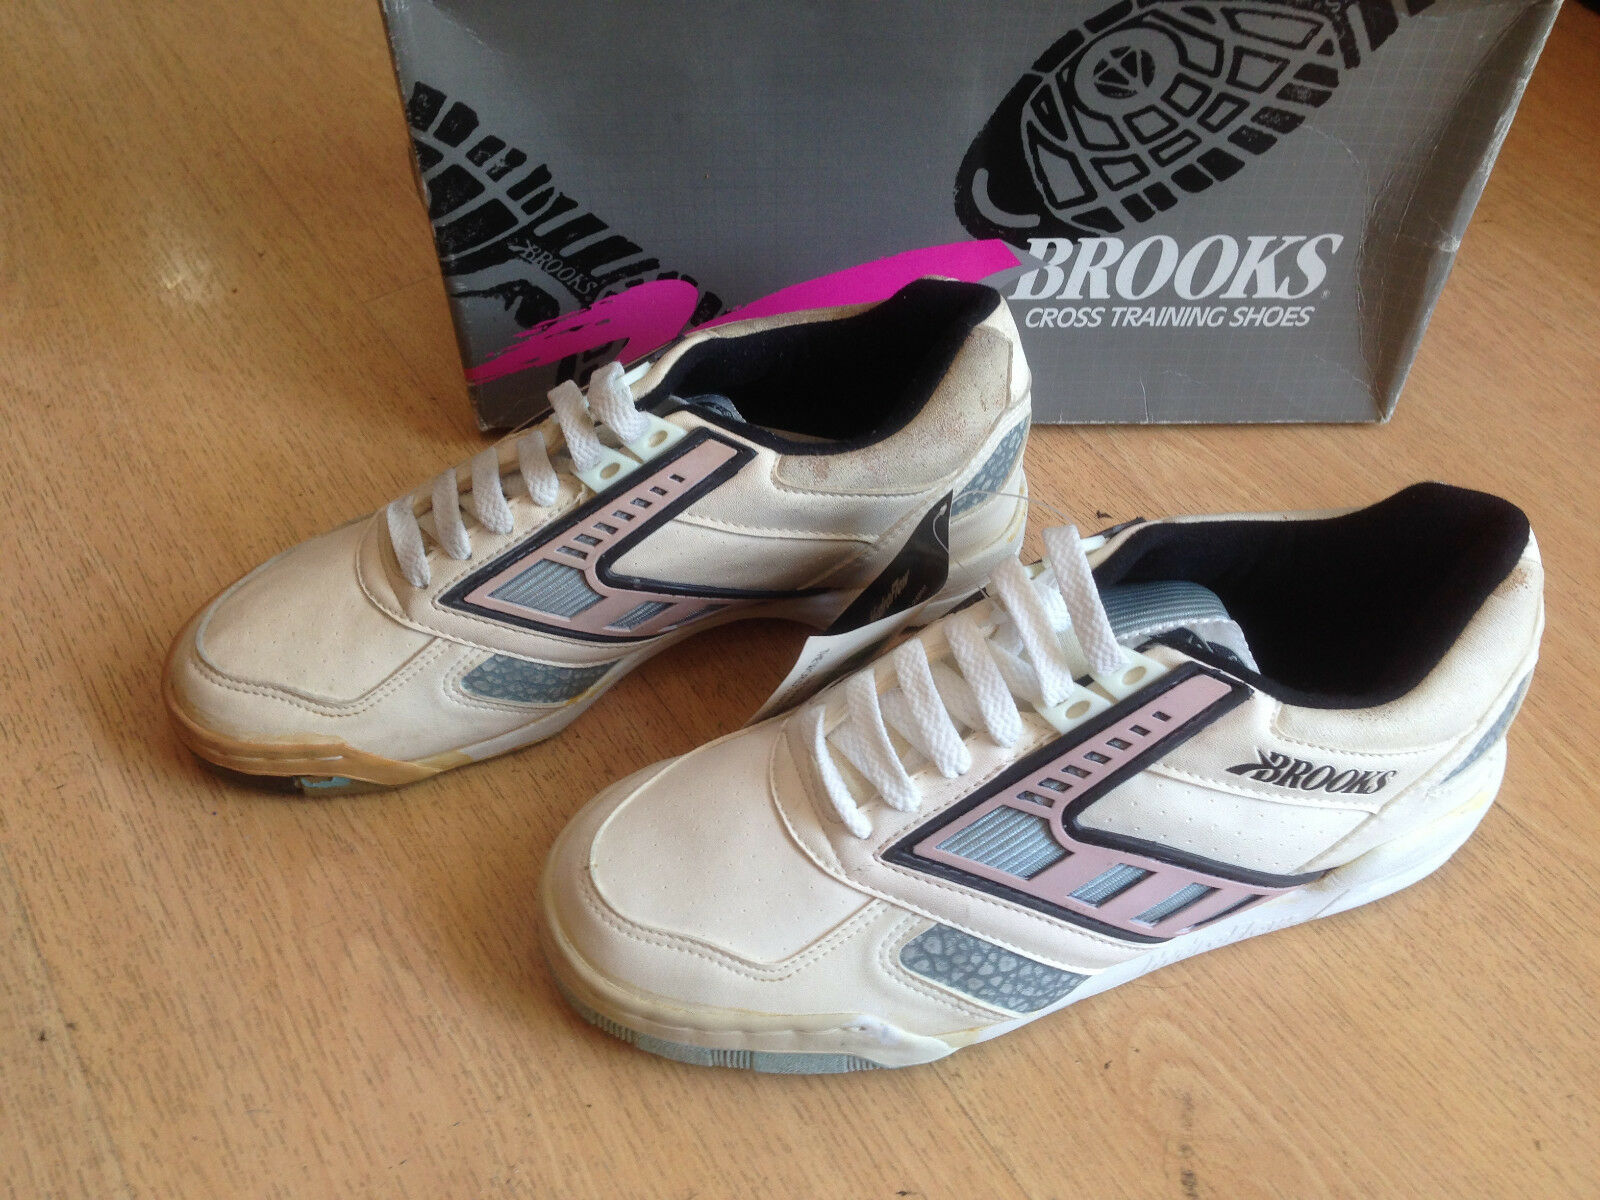 OG 1990s Brooks Elan Plus Low vintage scarpe da ginnastica US8.5 4031 VERY RARE!!!!